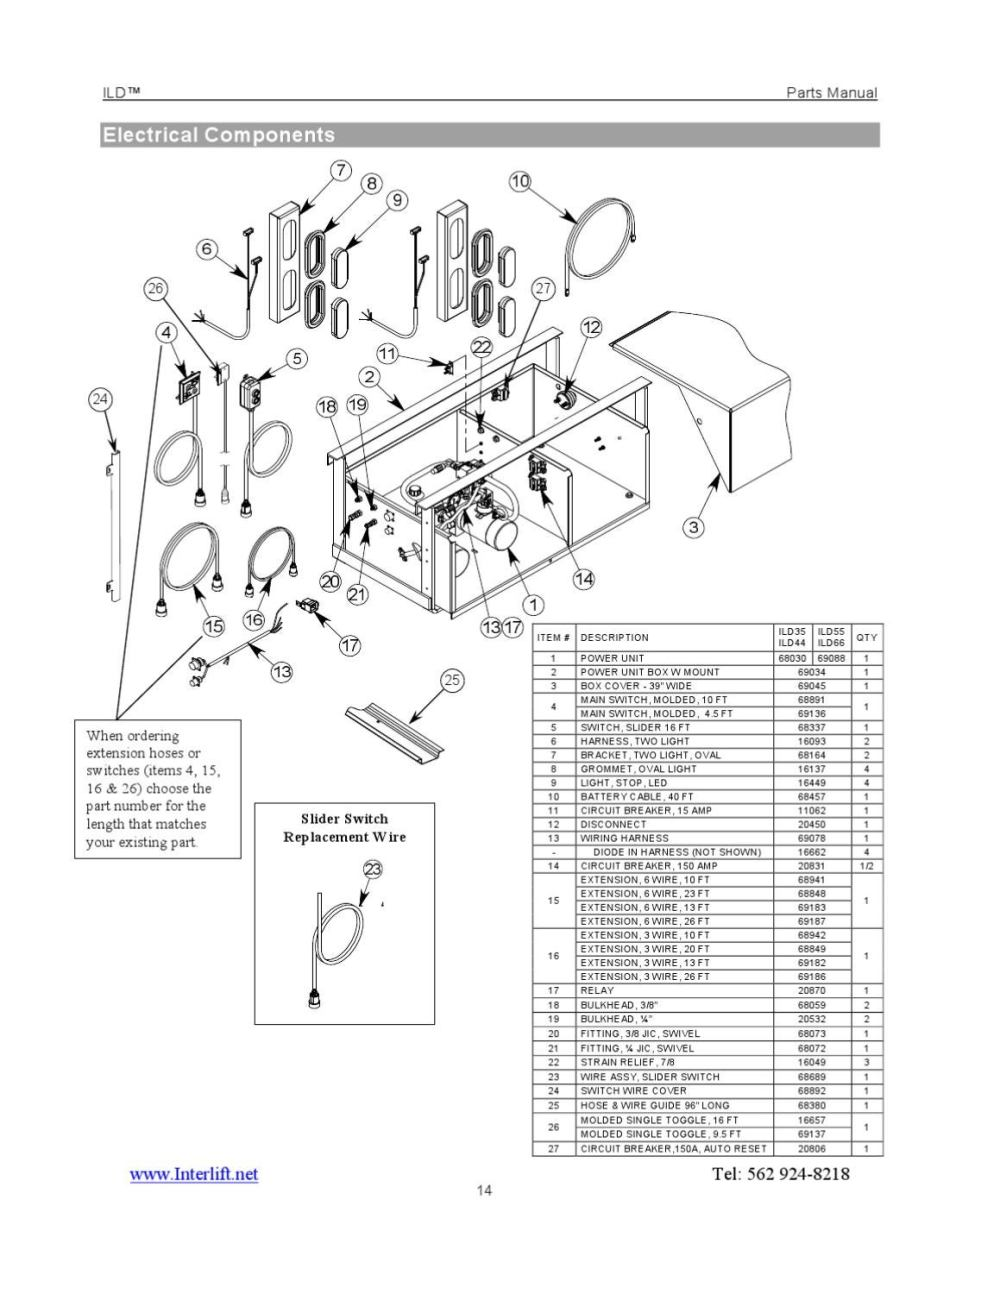 medium resolution of mbb interlift wiring diagram 28 wiring diagram images eagle lift wiring diagram mbb interlift wiring diagram for 83269925